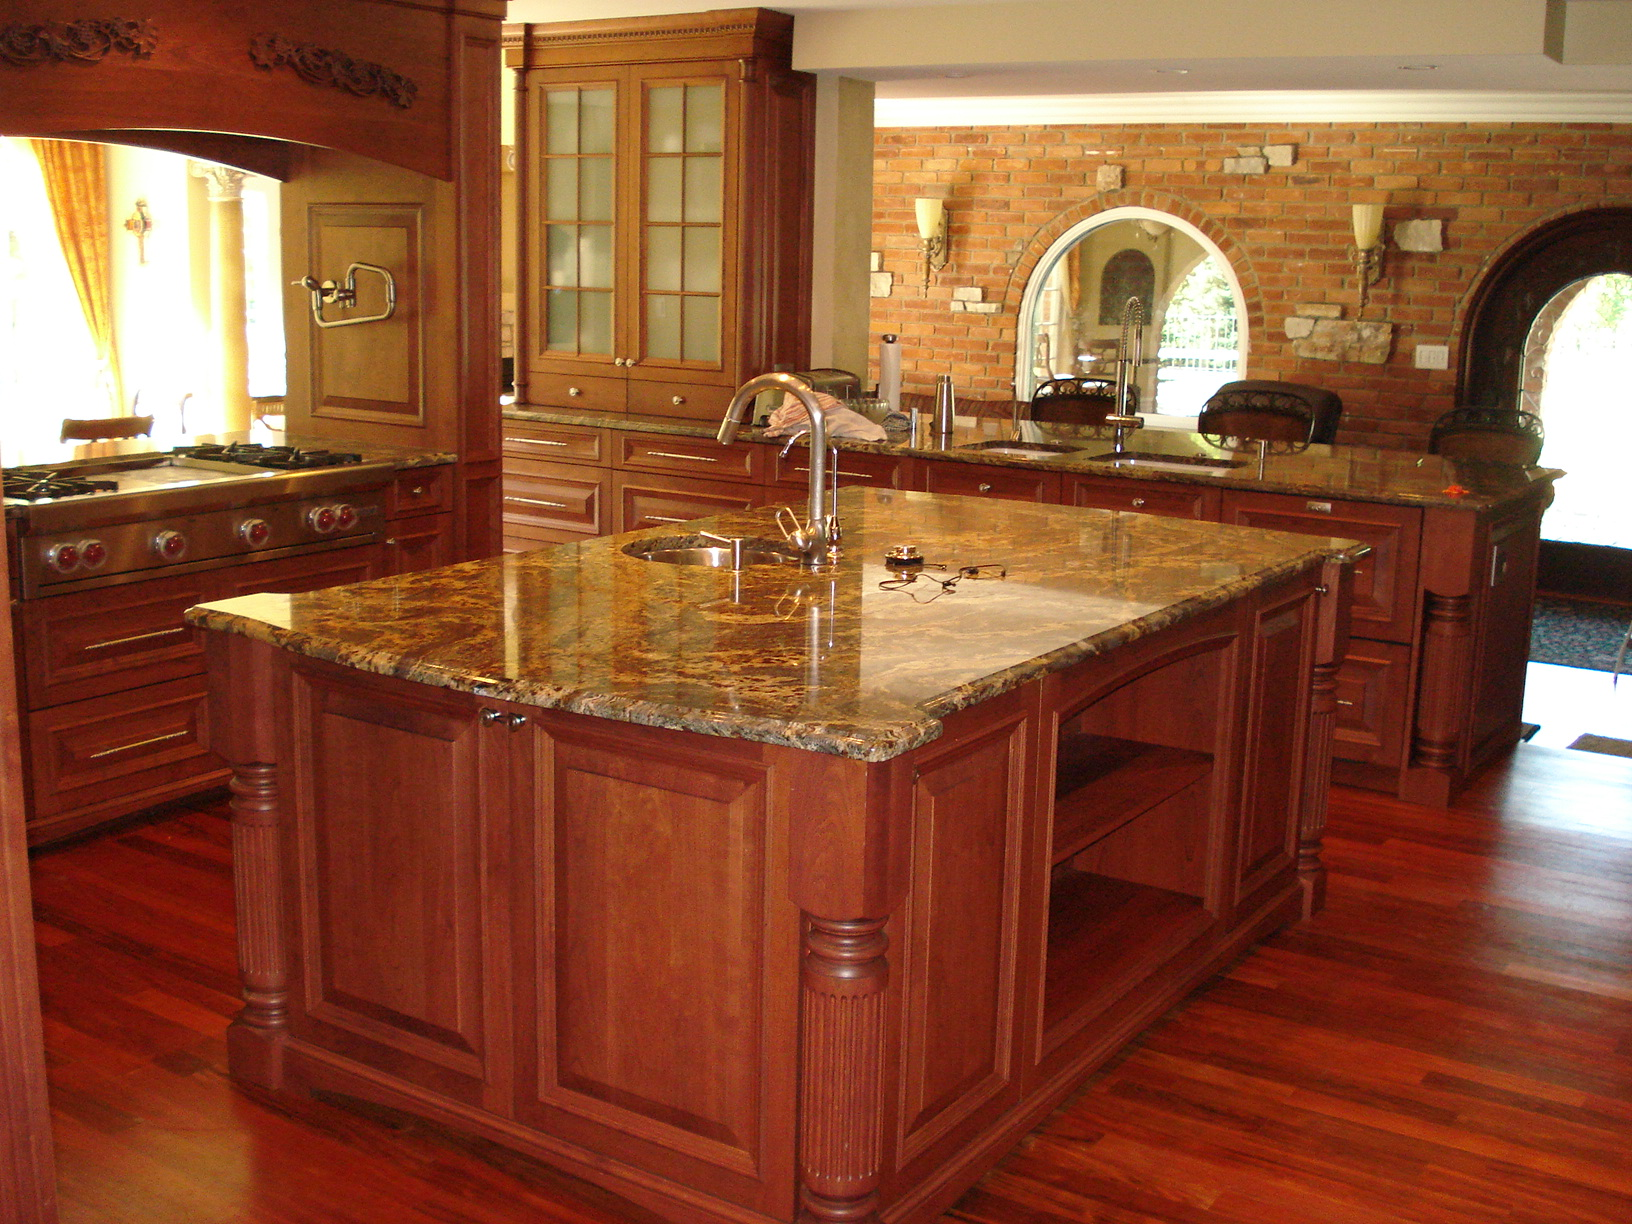 countertops kitchen countertops options Countertops